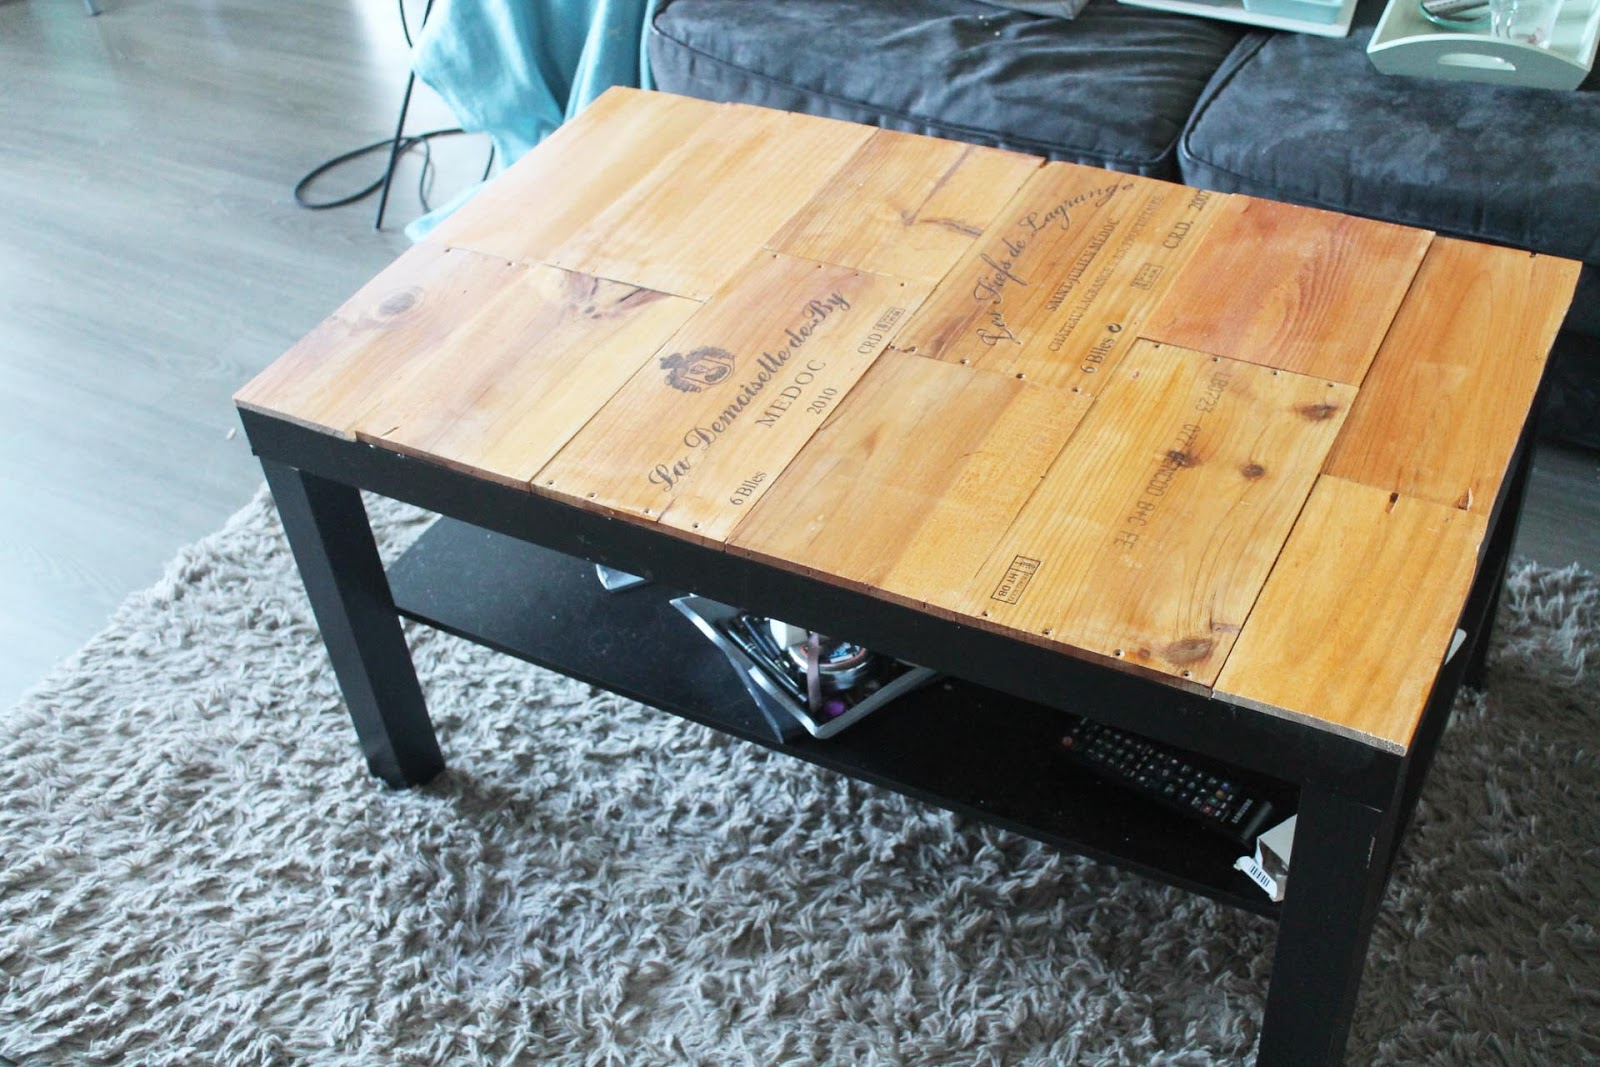 Customise ta table basse avec des caisses de vin ~ Customiser Table Basse En Bois